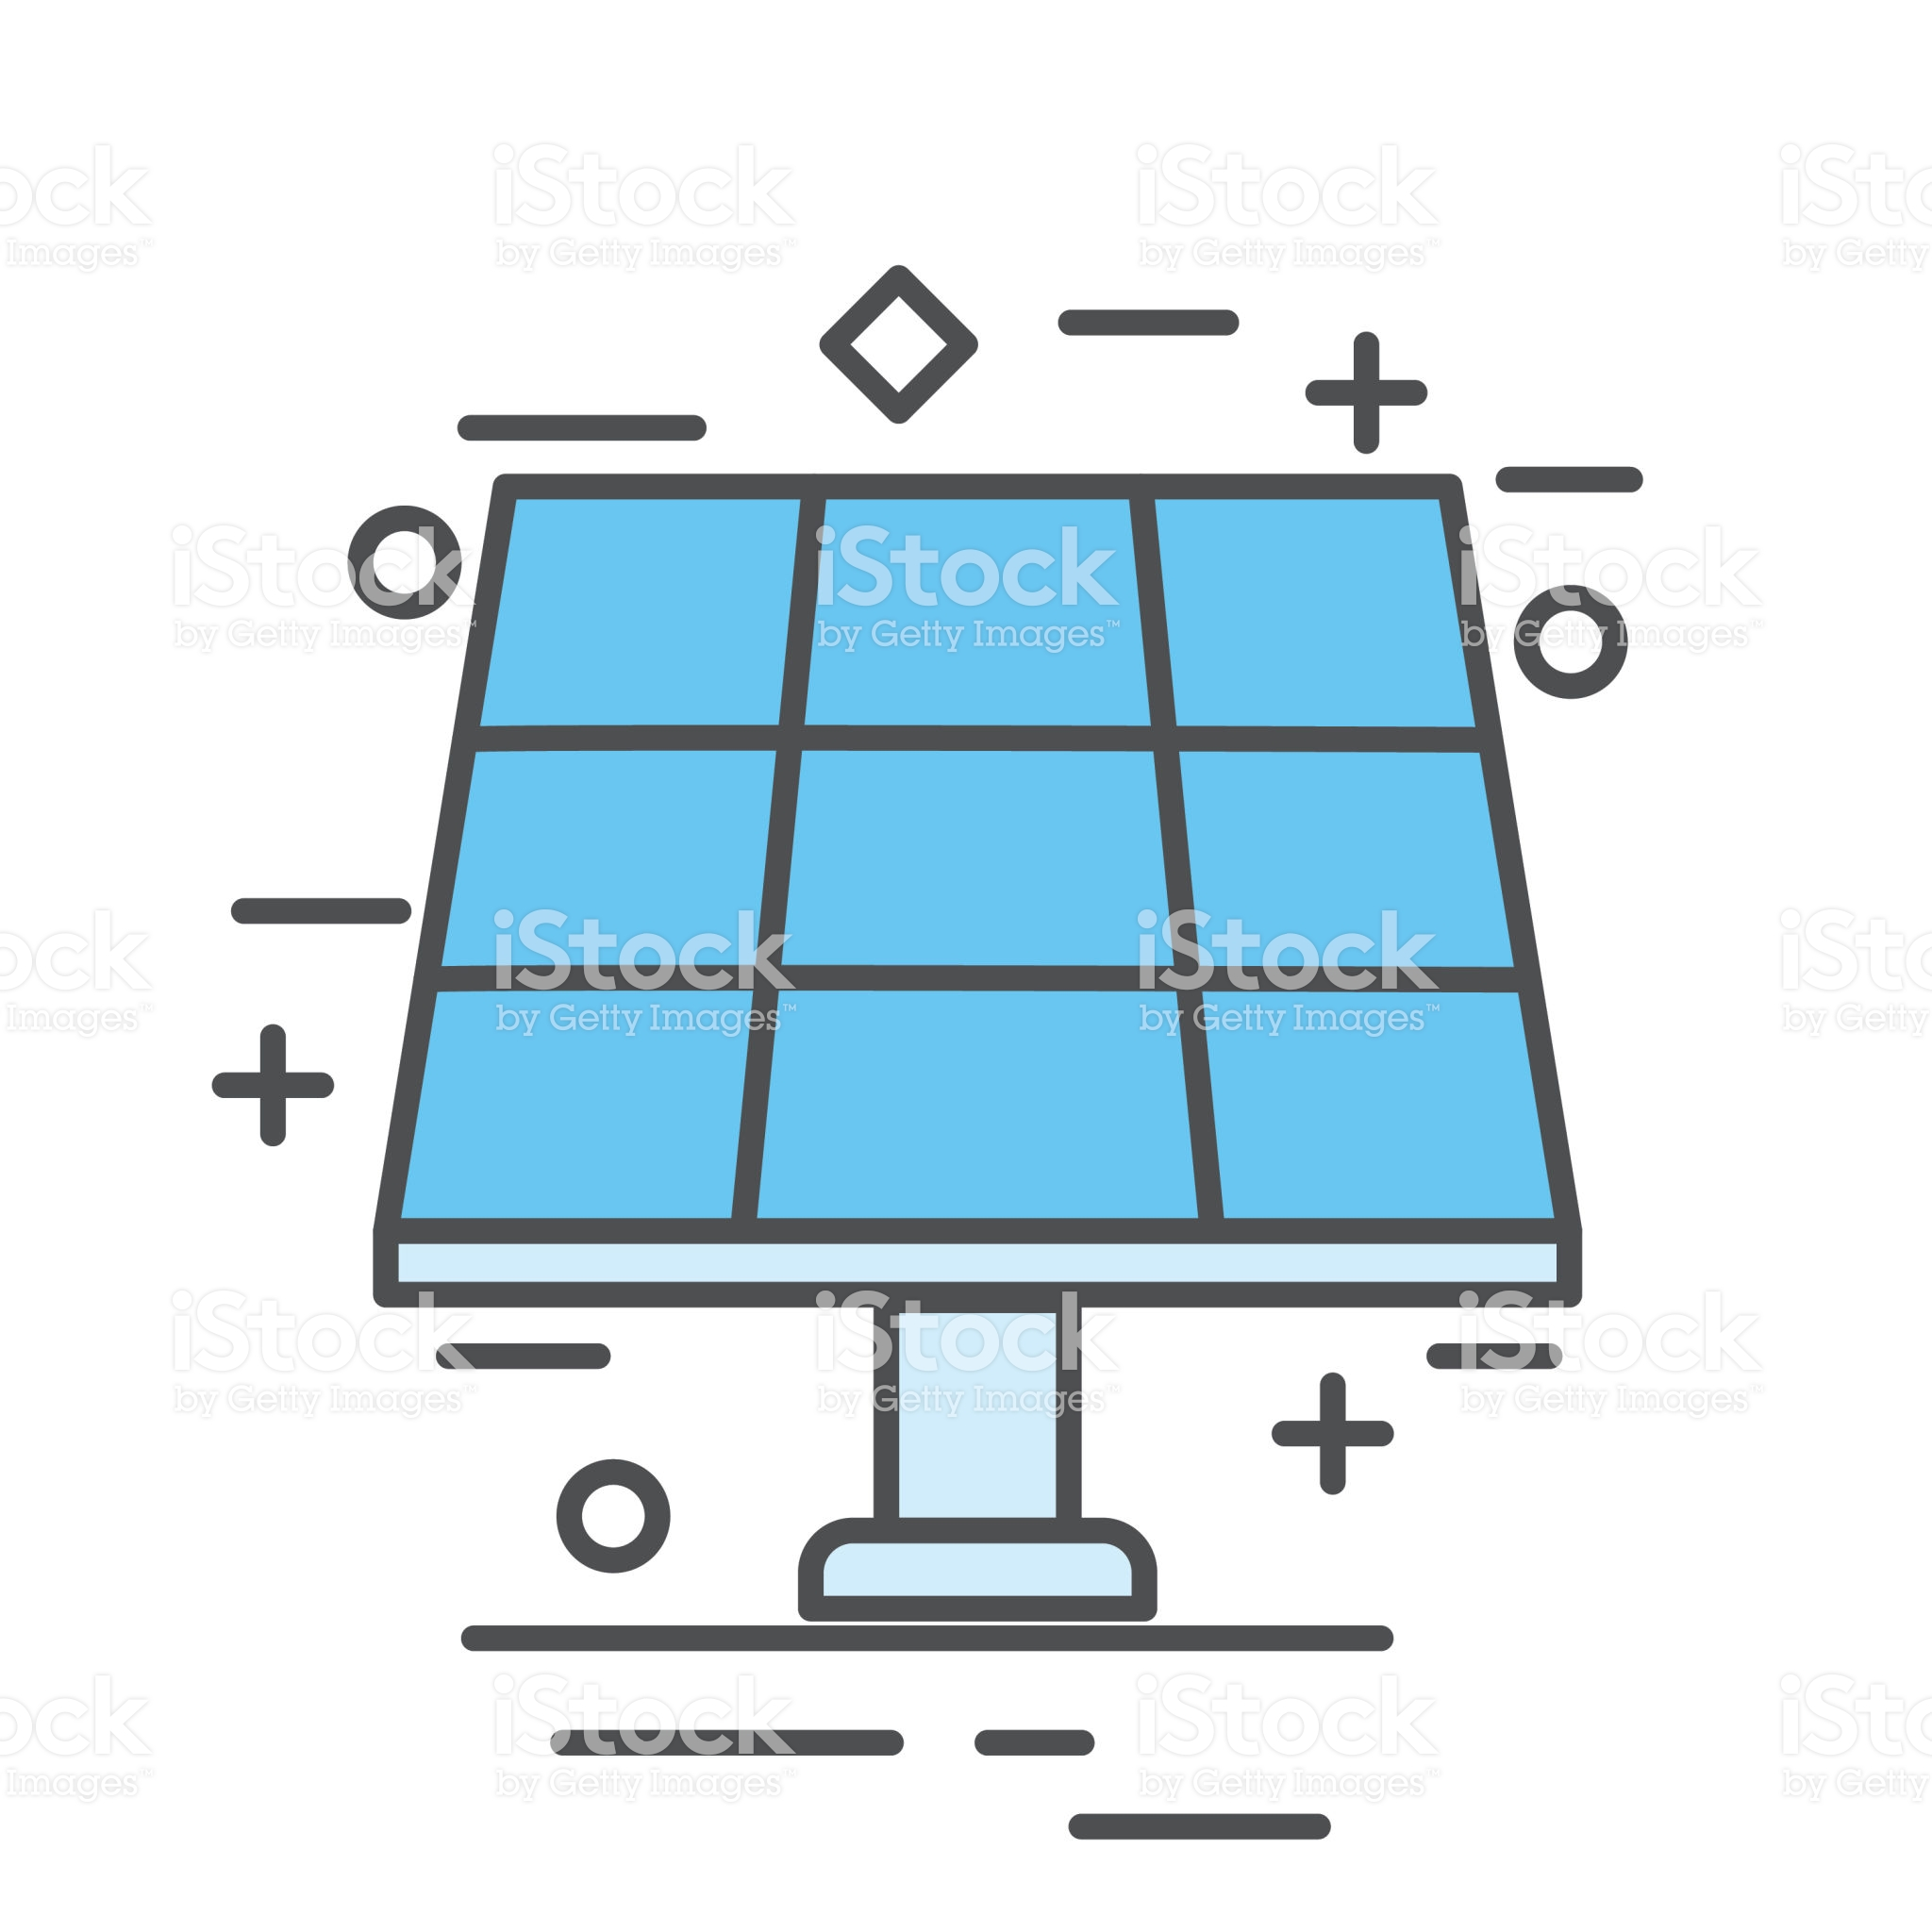 Solar Panel Environment Icon In Thin Line Flat Design Style Solar Energy Projects Alternative Energy Solar Energy Business